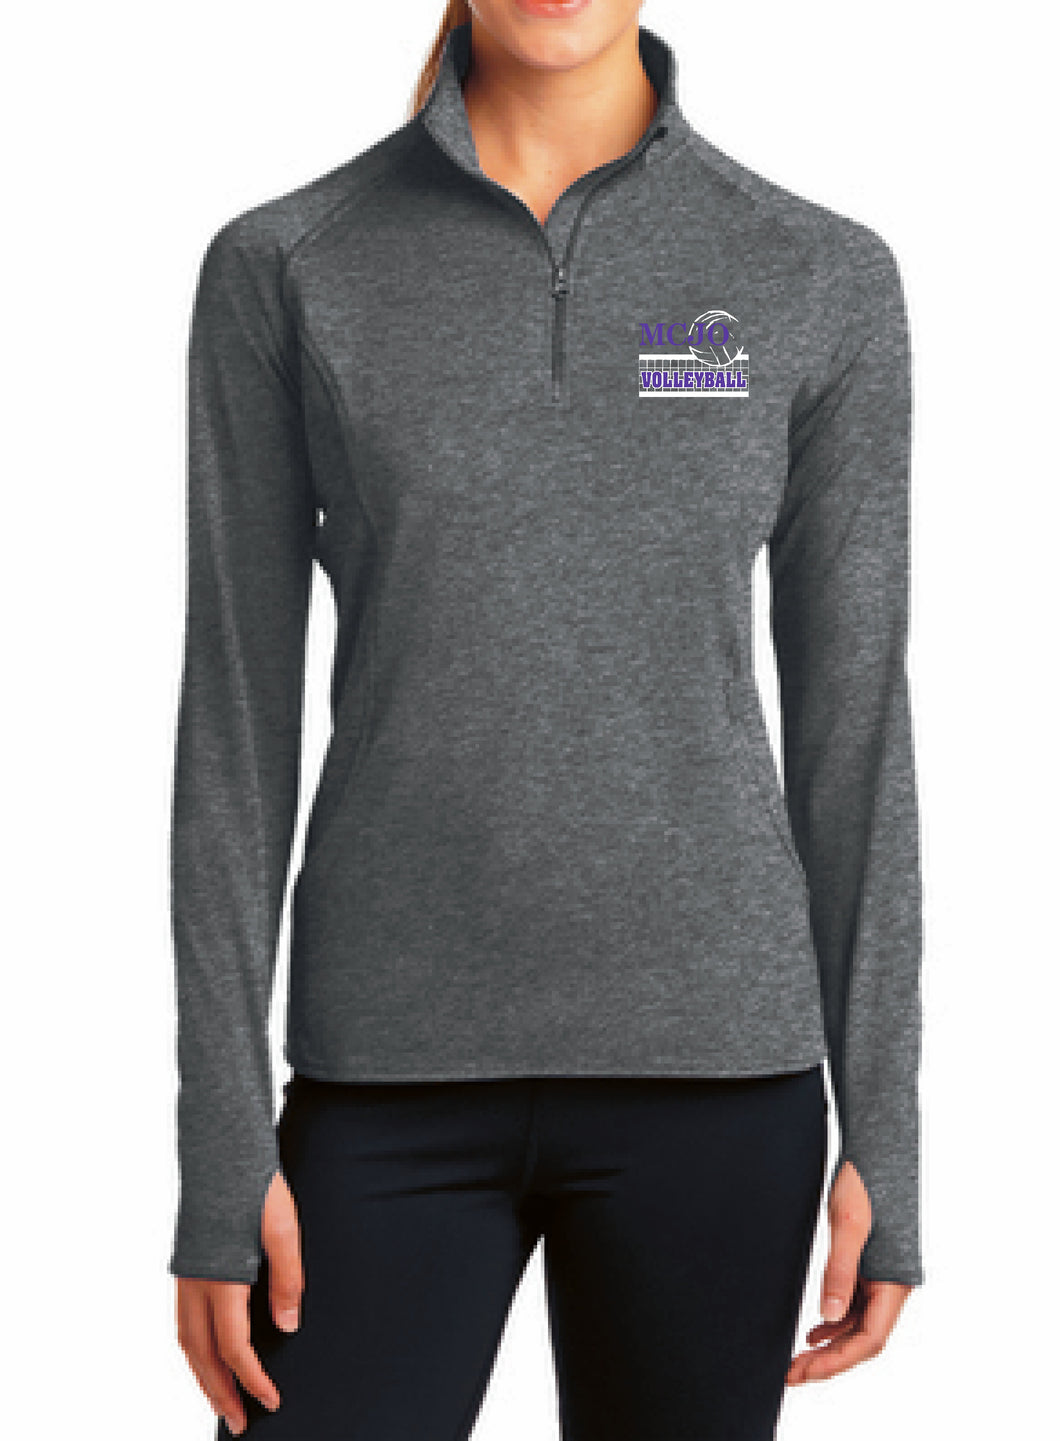 MCJO Sport Tek Ladies 1/4 Zip